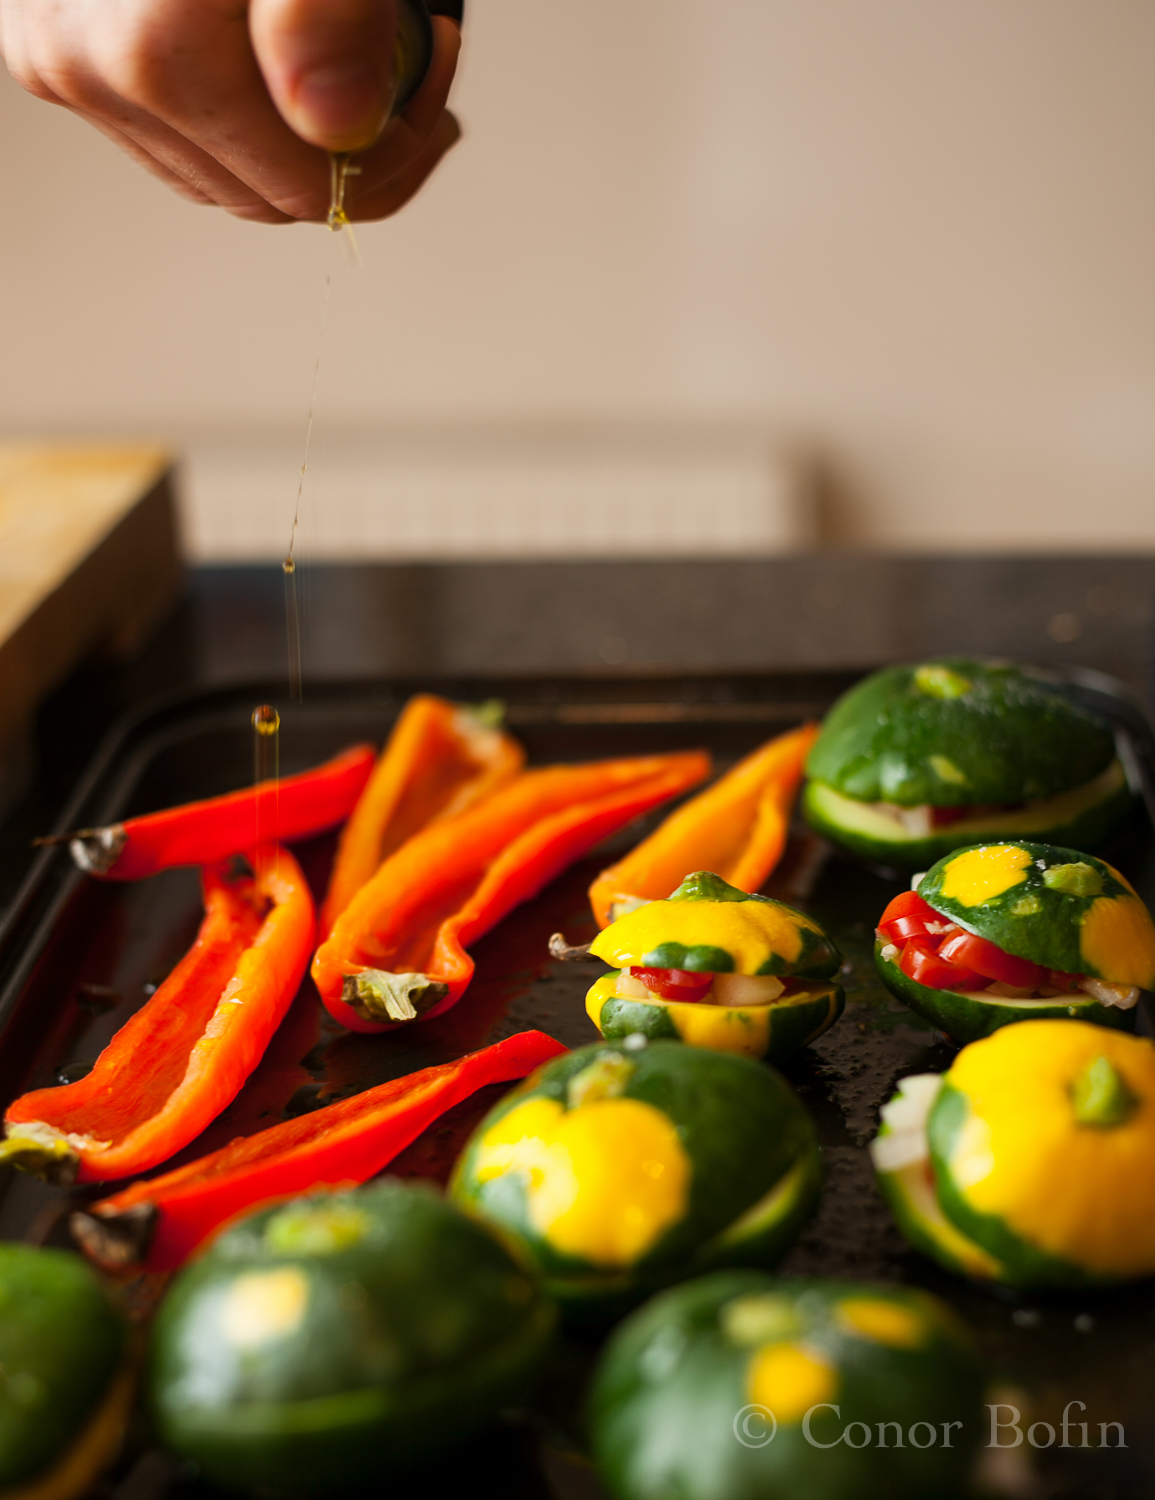 Mini Squash and paprika peppers